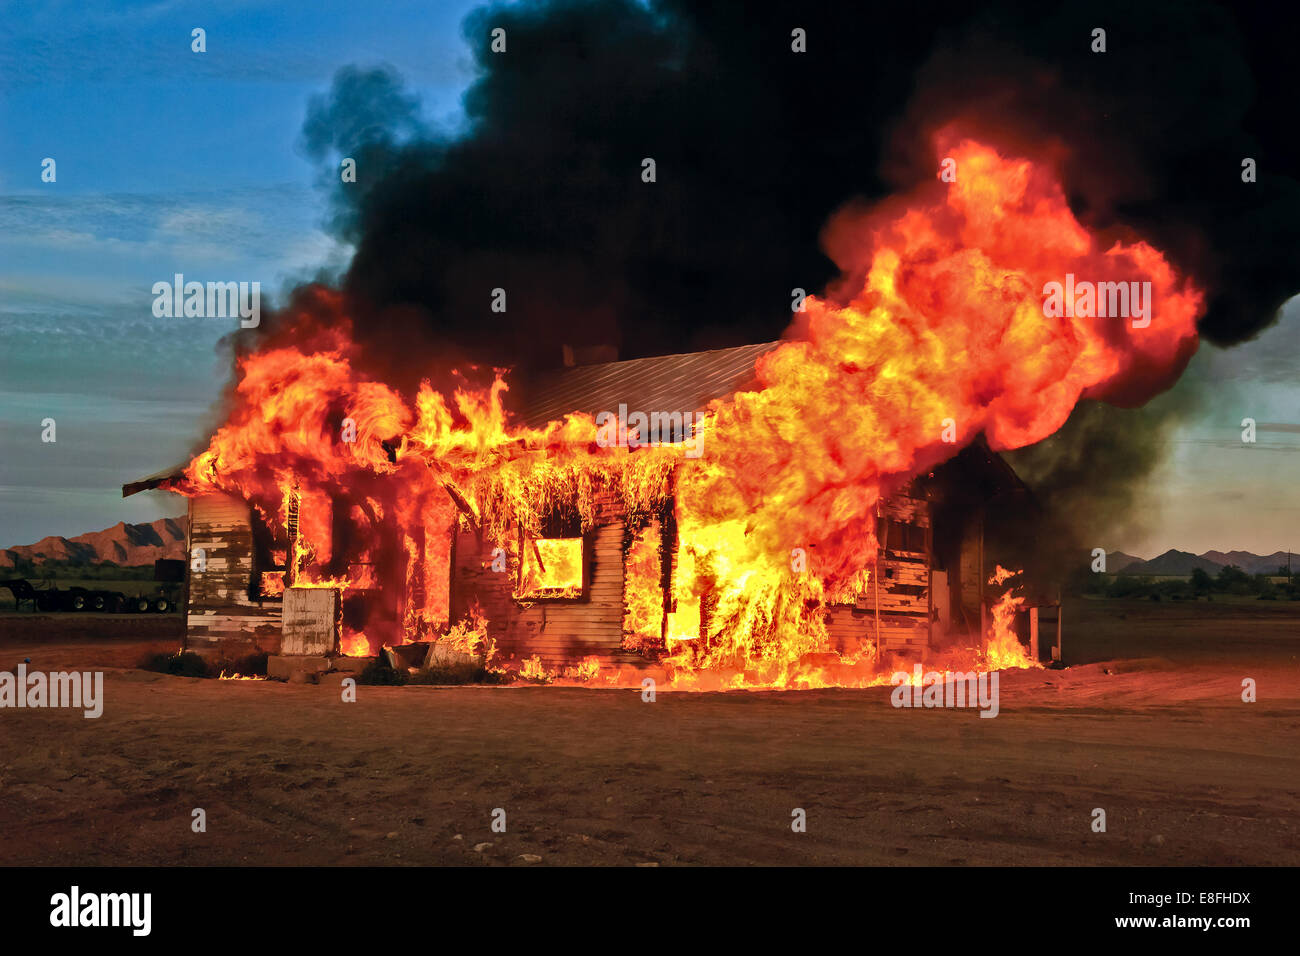 Maison abandonnée sur le feu, Gila Bend, en Arizona, l'Amérique, USA Photo Stock